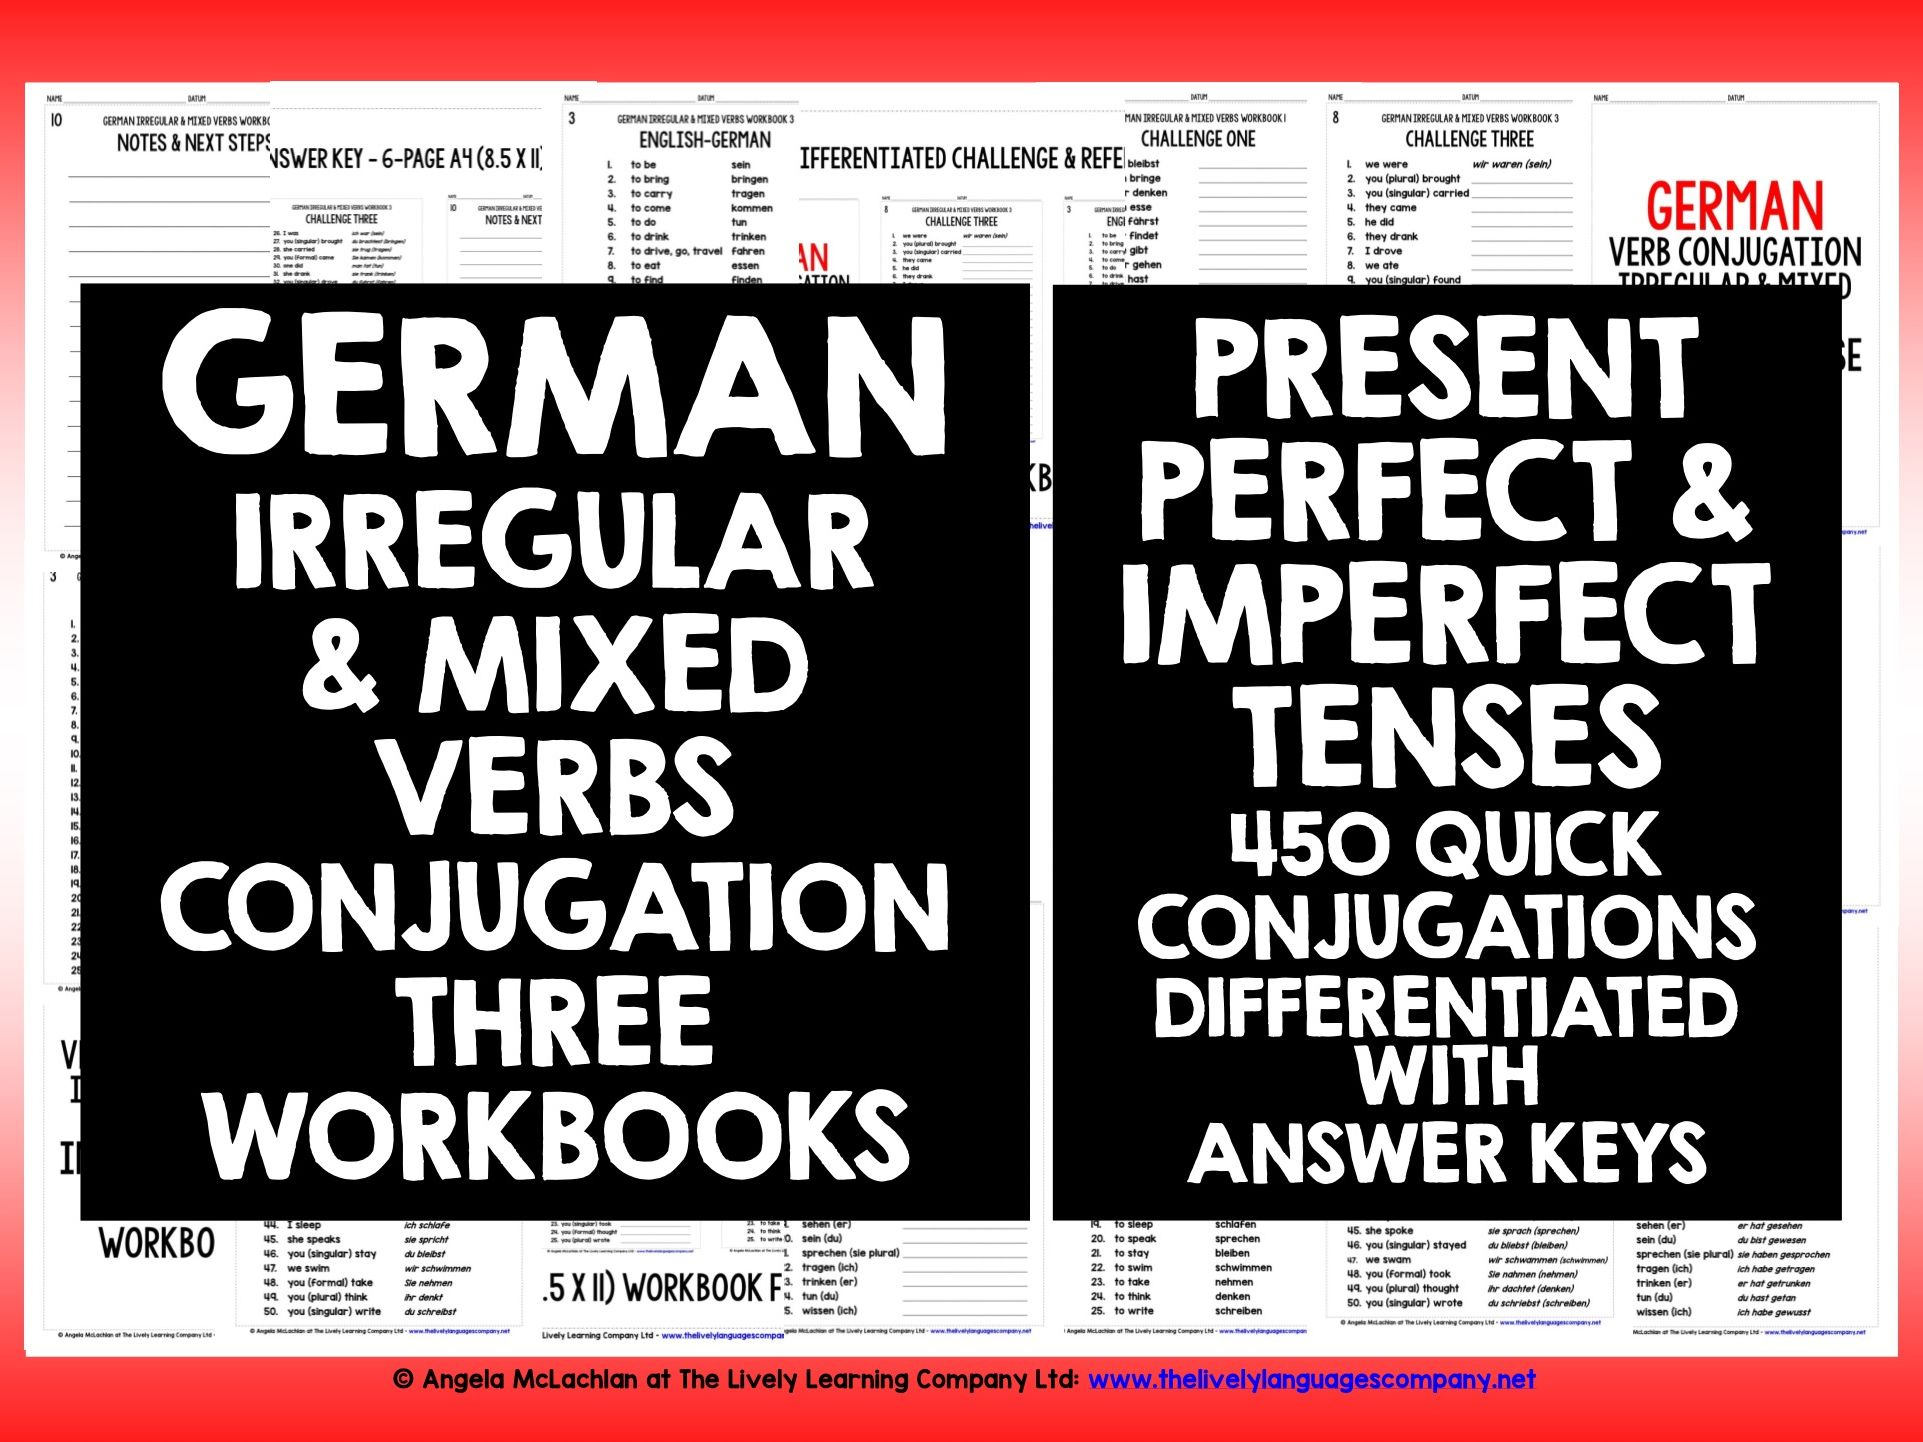 GERMAN IRREGULAR VERBS REVISION